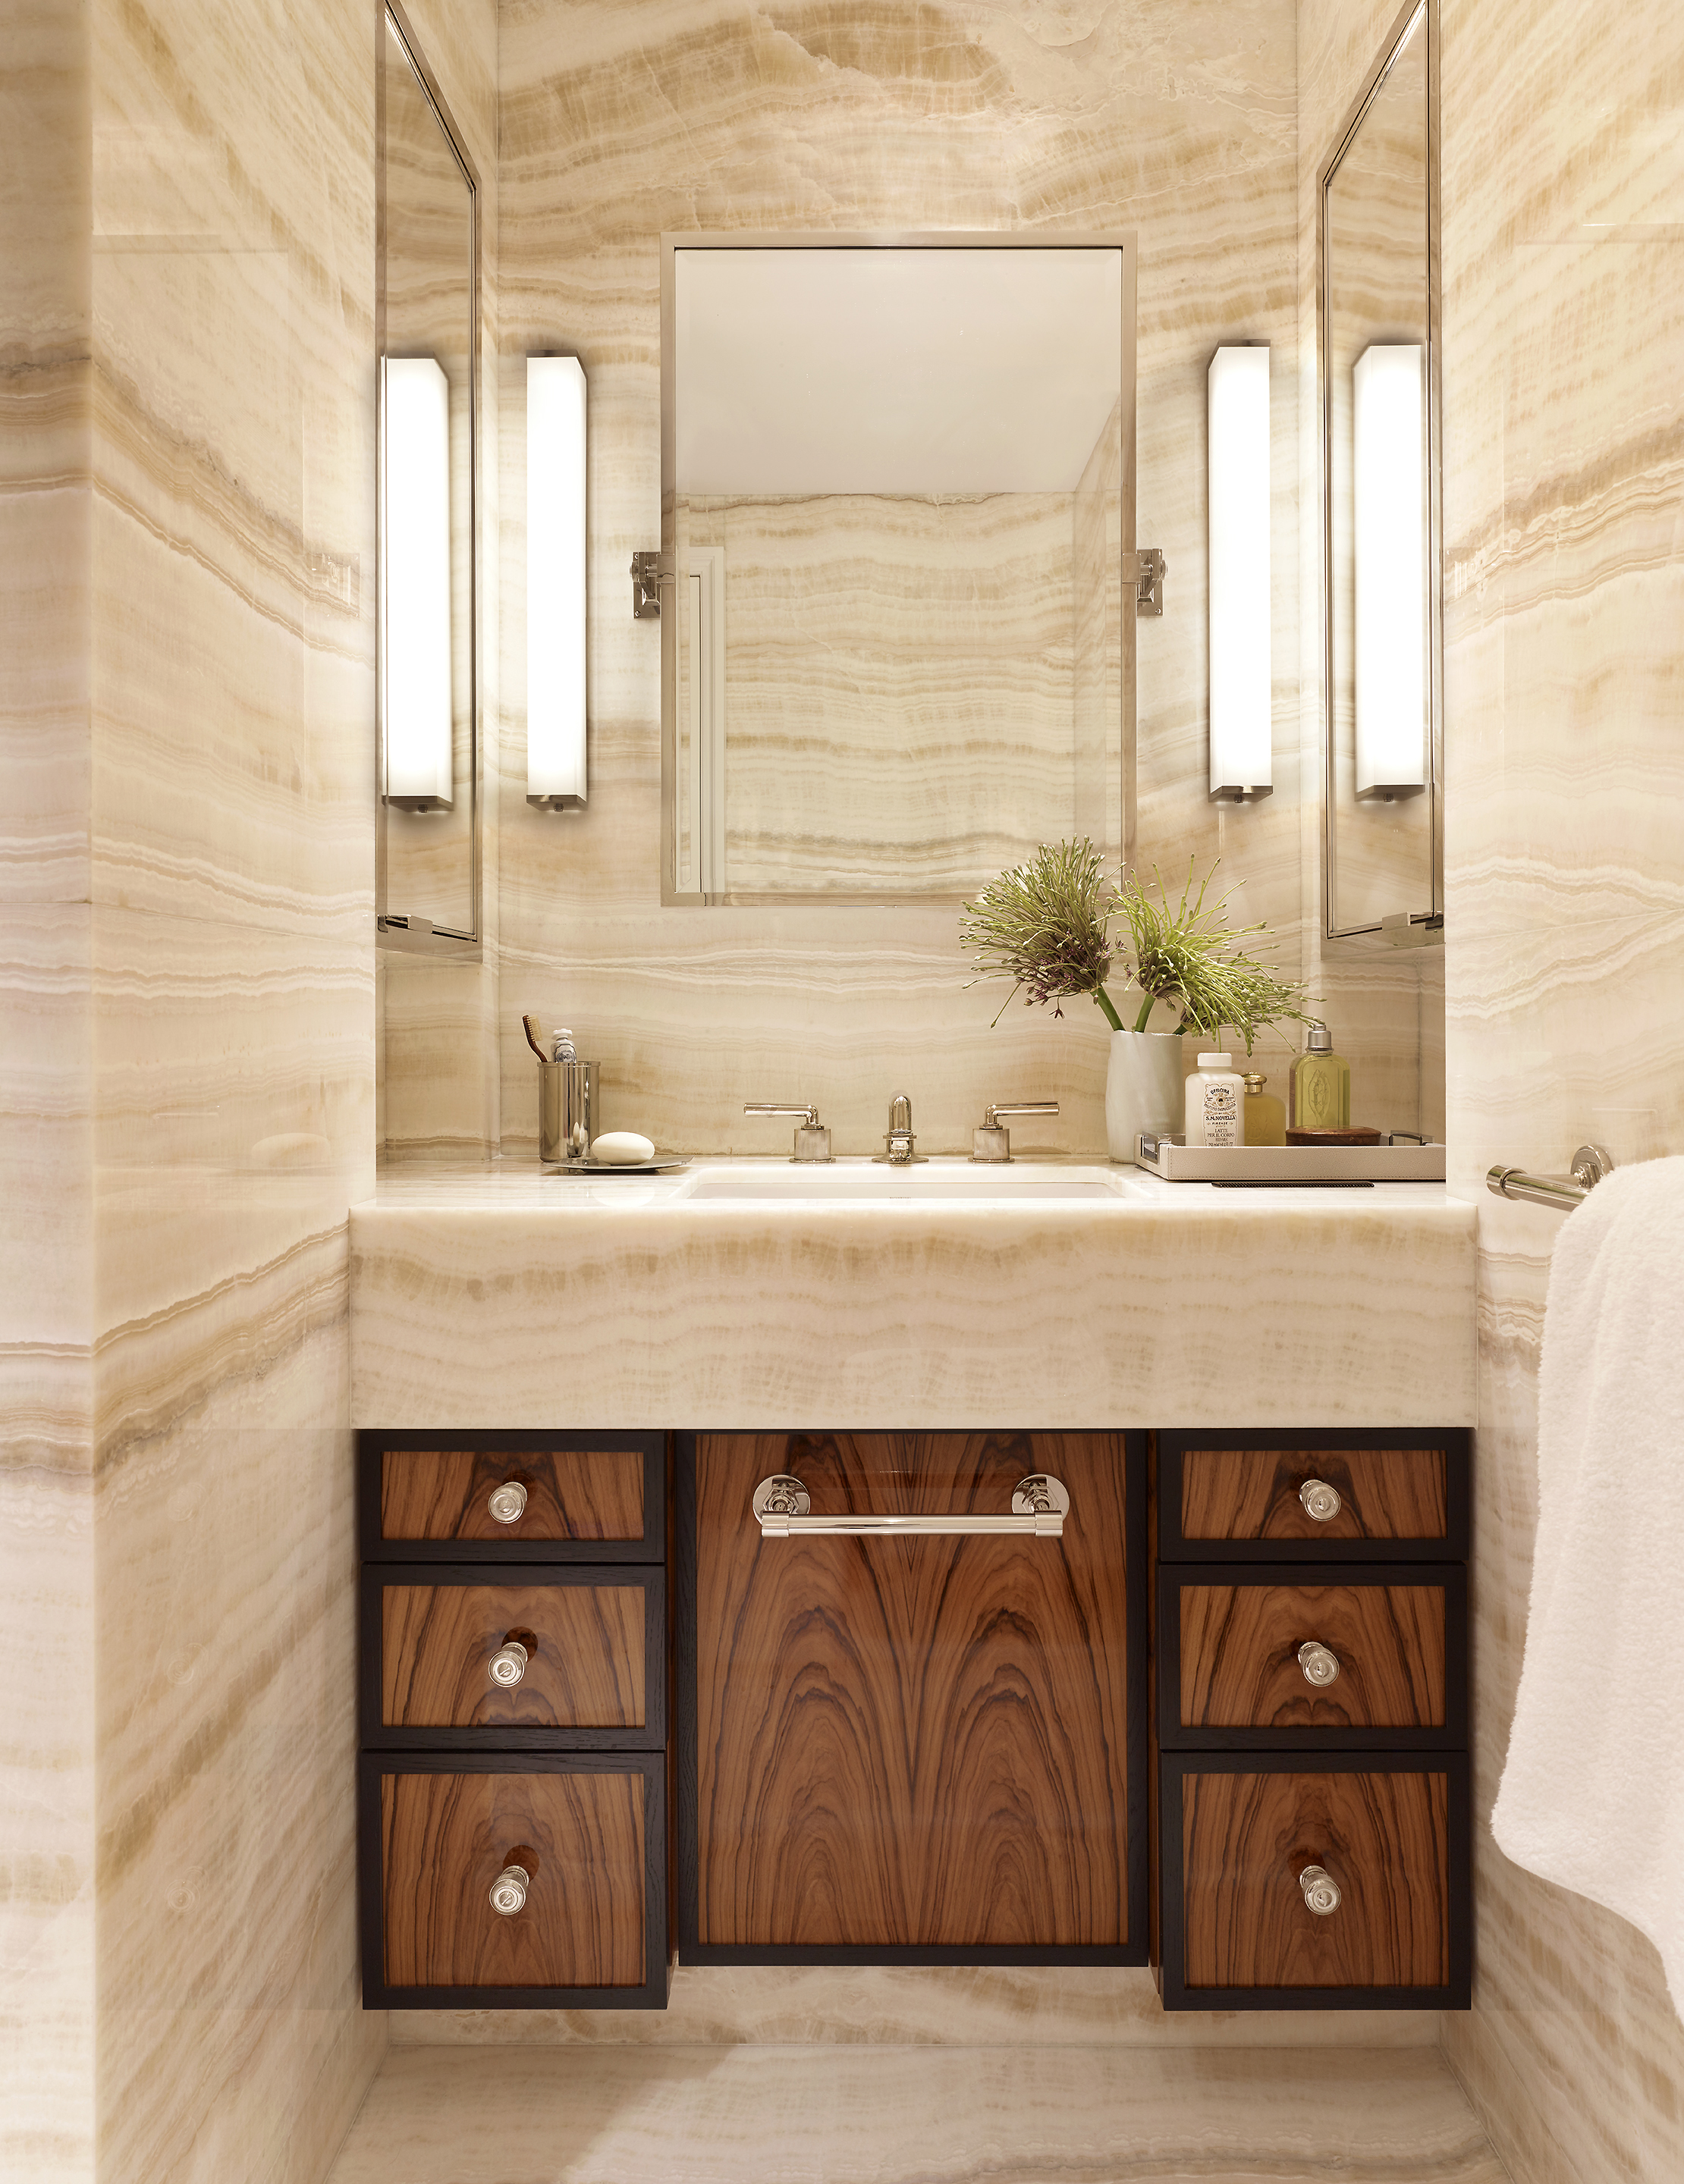 Stonefox 115 East 67th Street Bathroom MEP designed by 2L Engineering